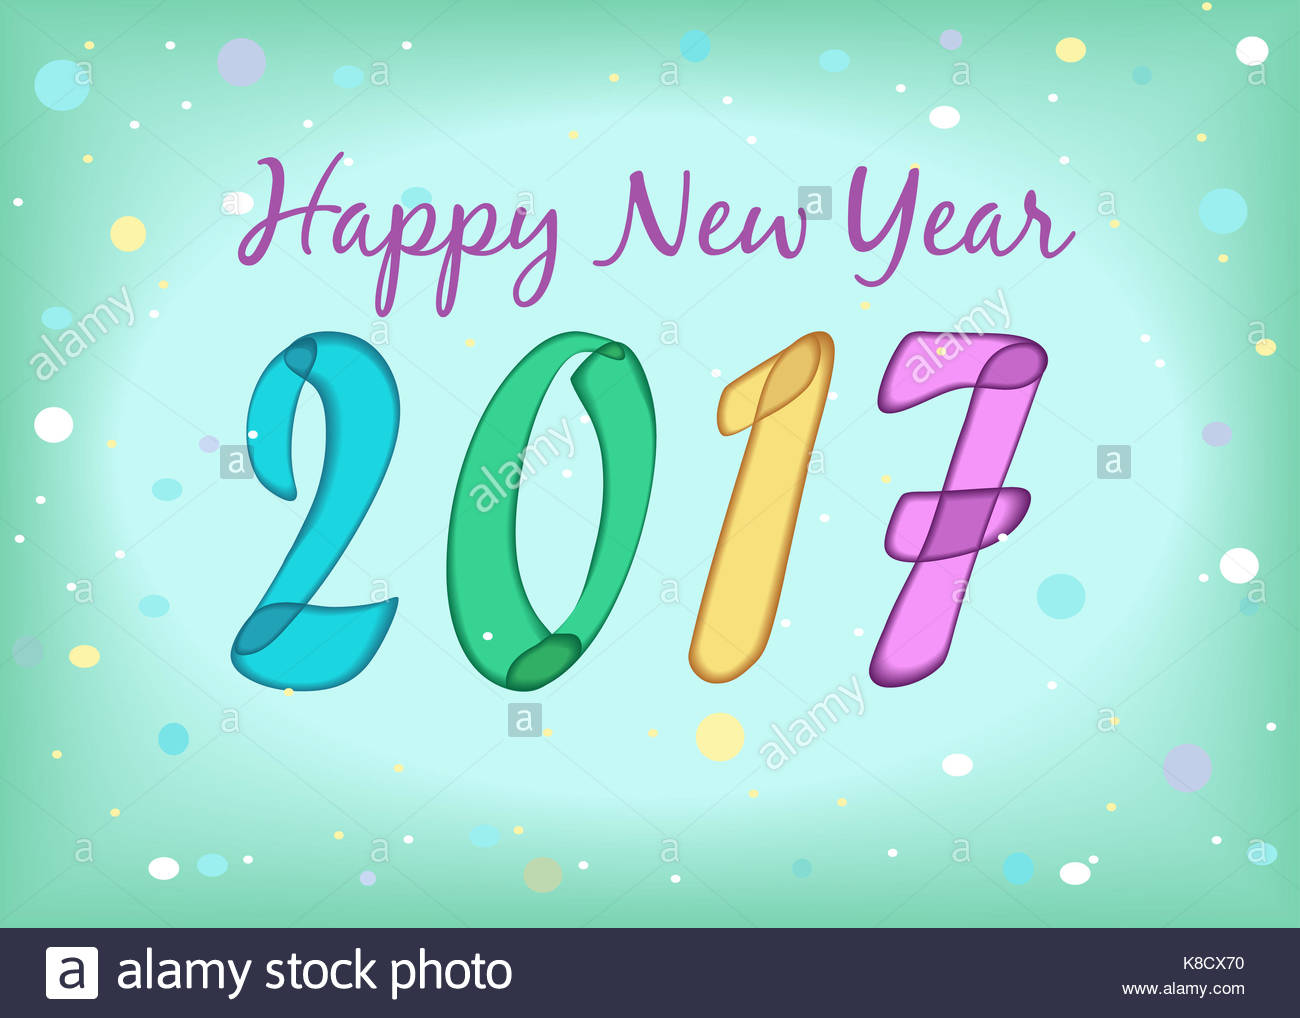 Happy New Year 2017 Calendar Template Colorful Hand Drawn Symbols